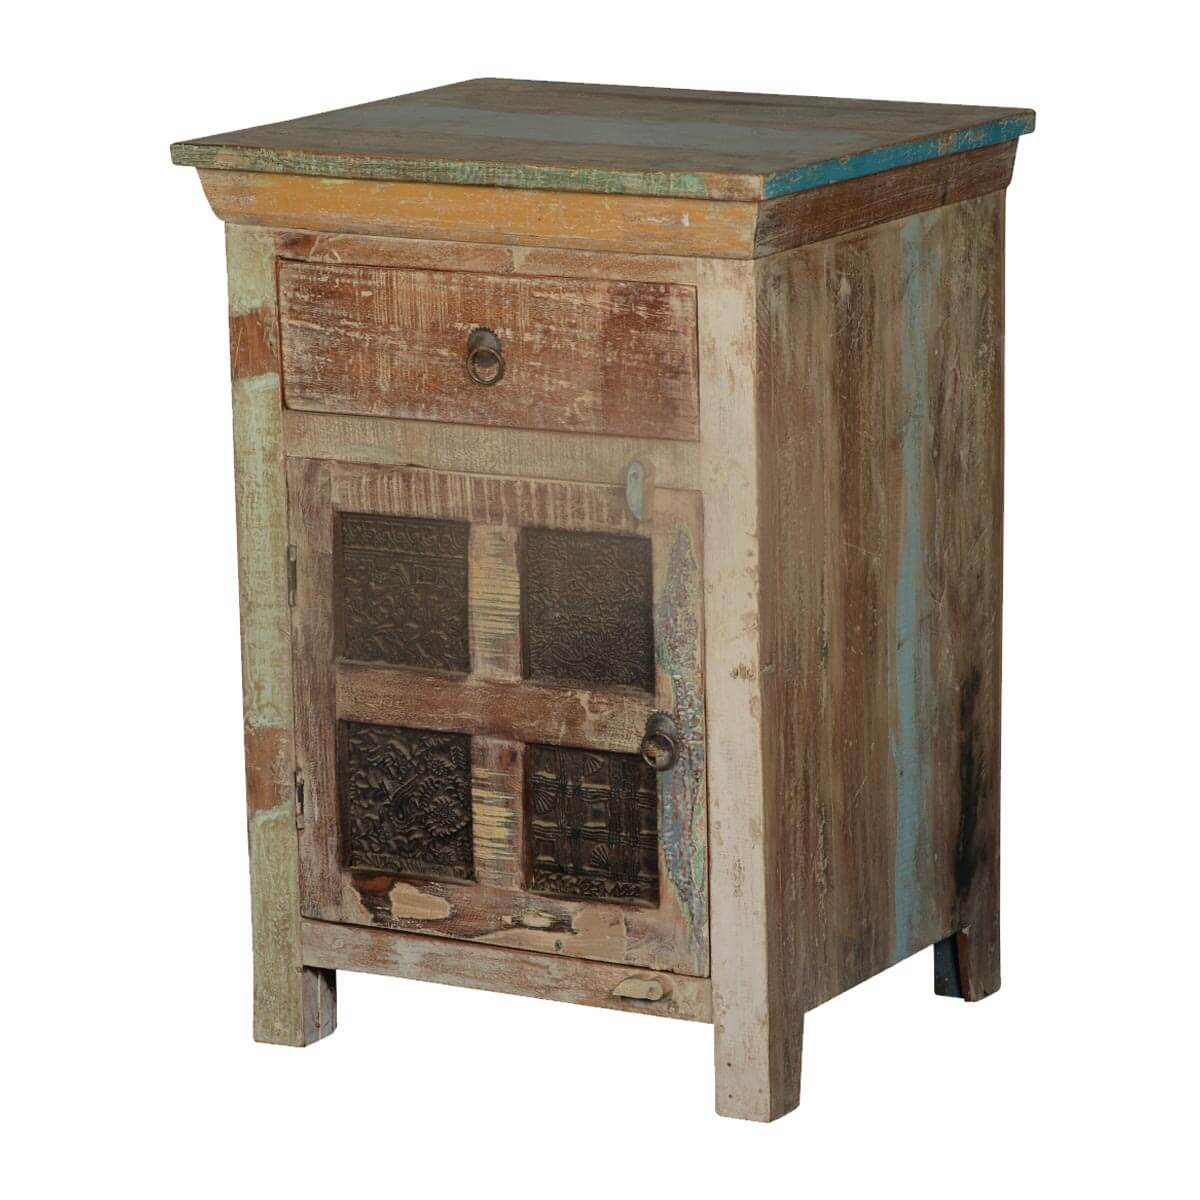 reclaimed wood end table Maquon Rustic Wooden Windows Reclaimed Wood 1 Drawer Nightstand reclaimed wood end table